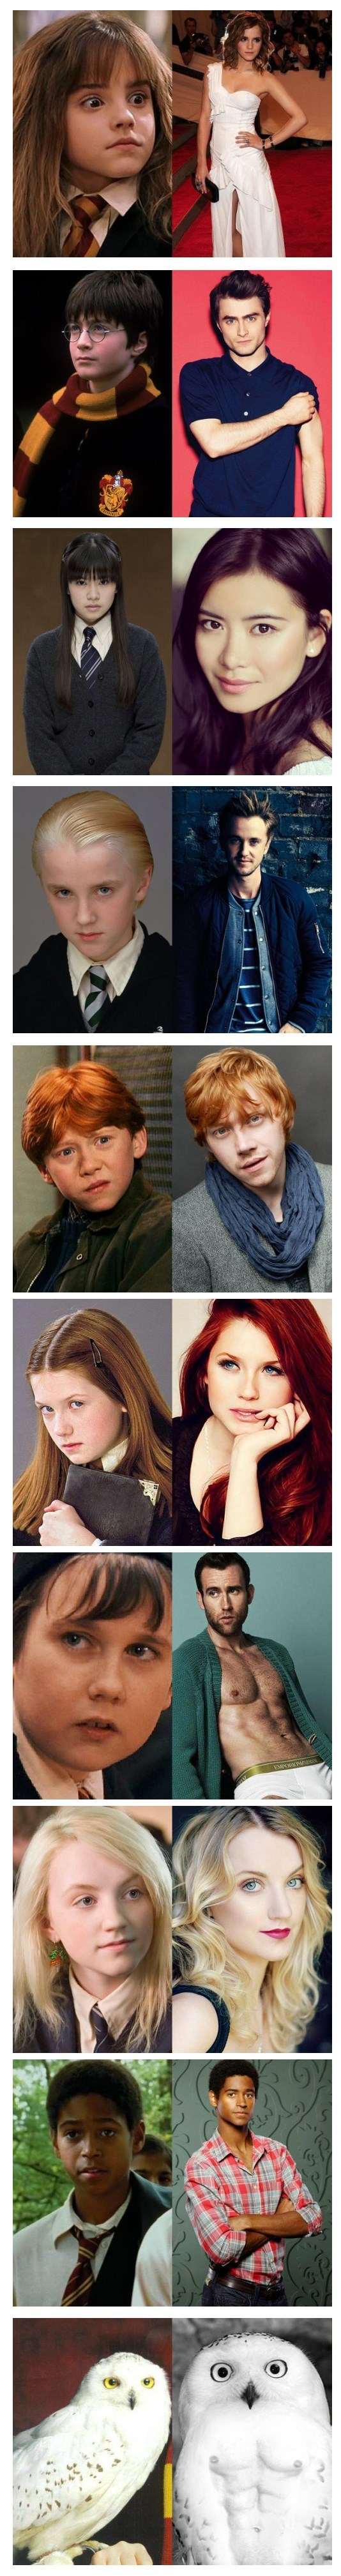 harry potter crecidos